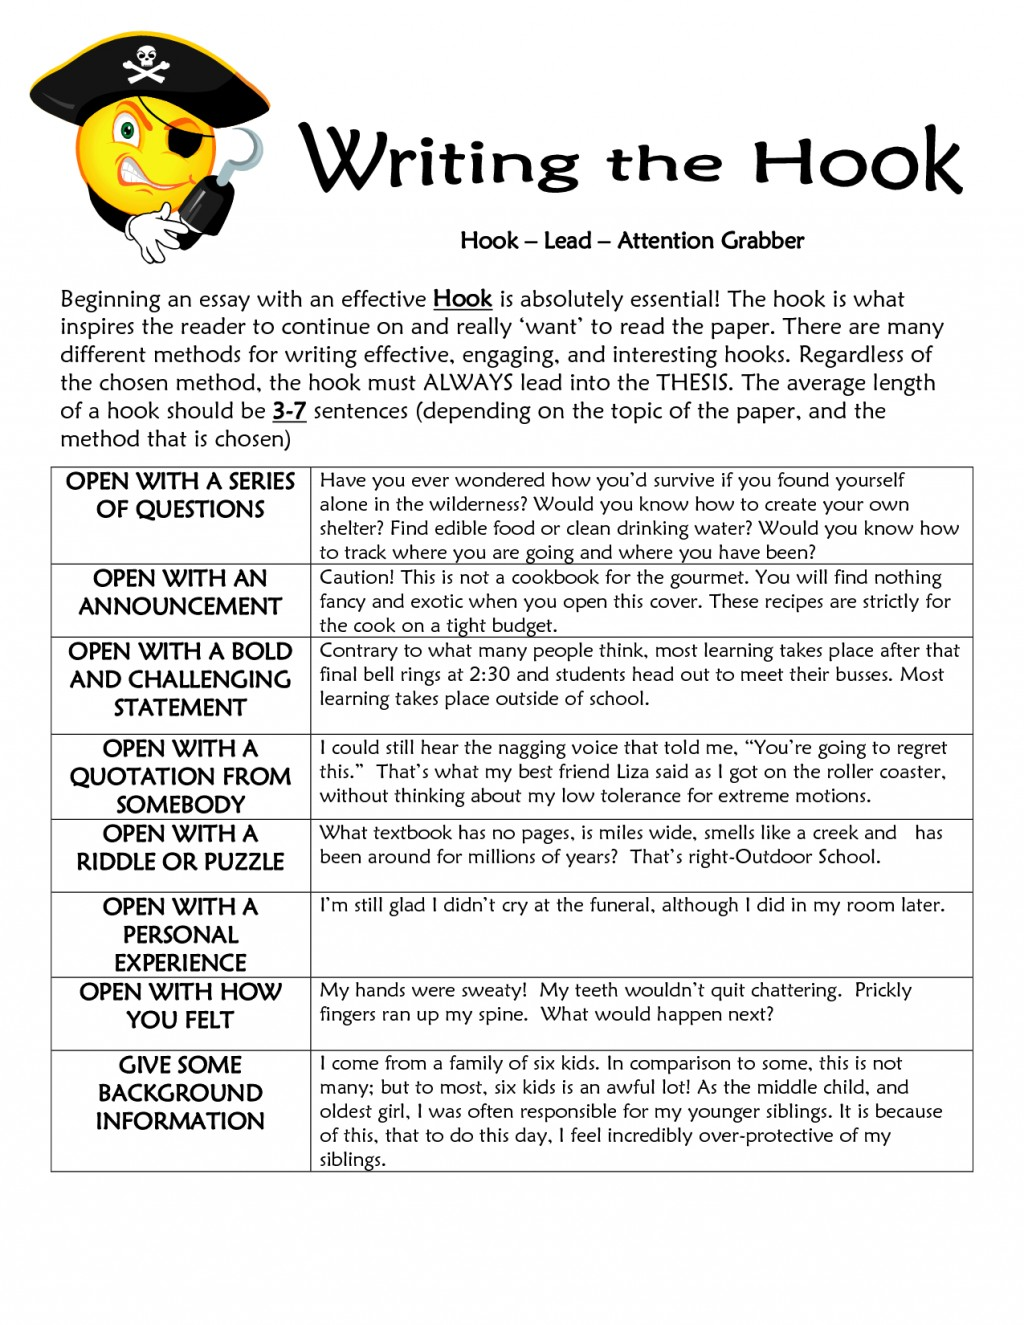 002 Essay Example Good Hooks For Essays Unforgettable About Culture Heroes Large